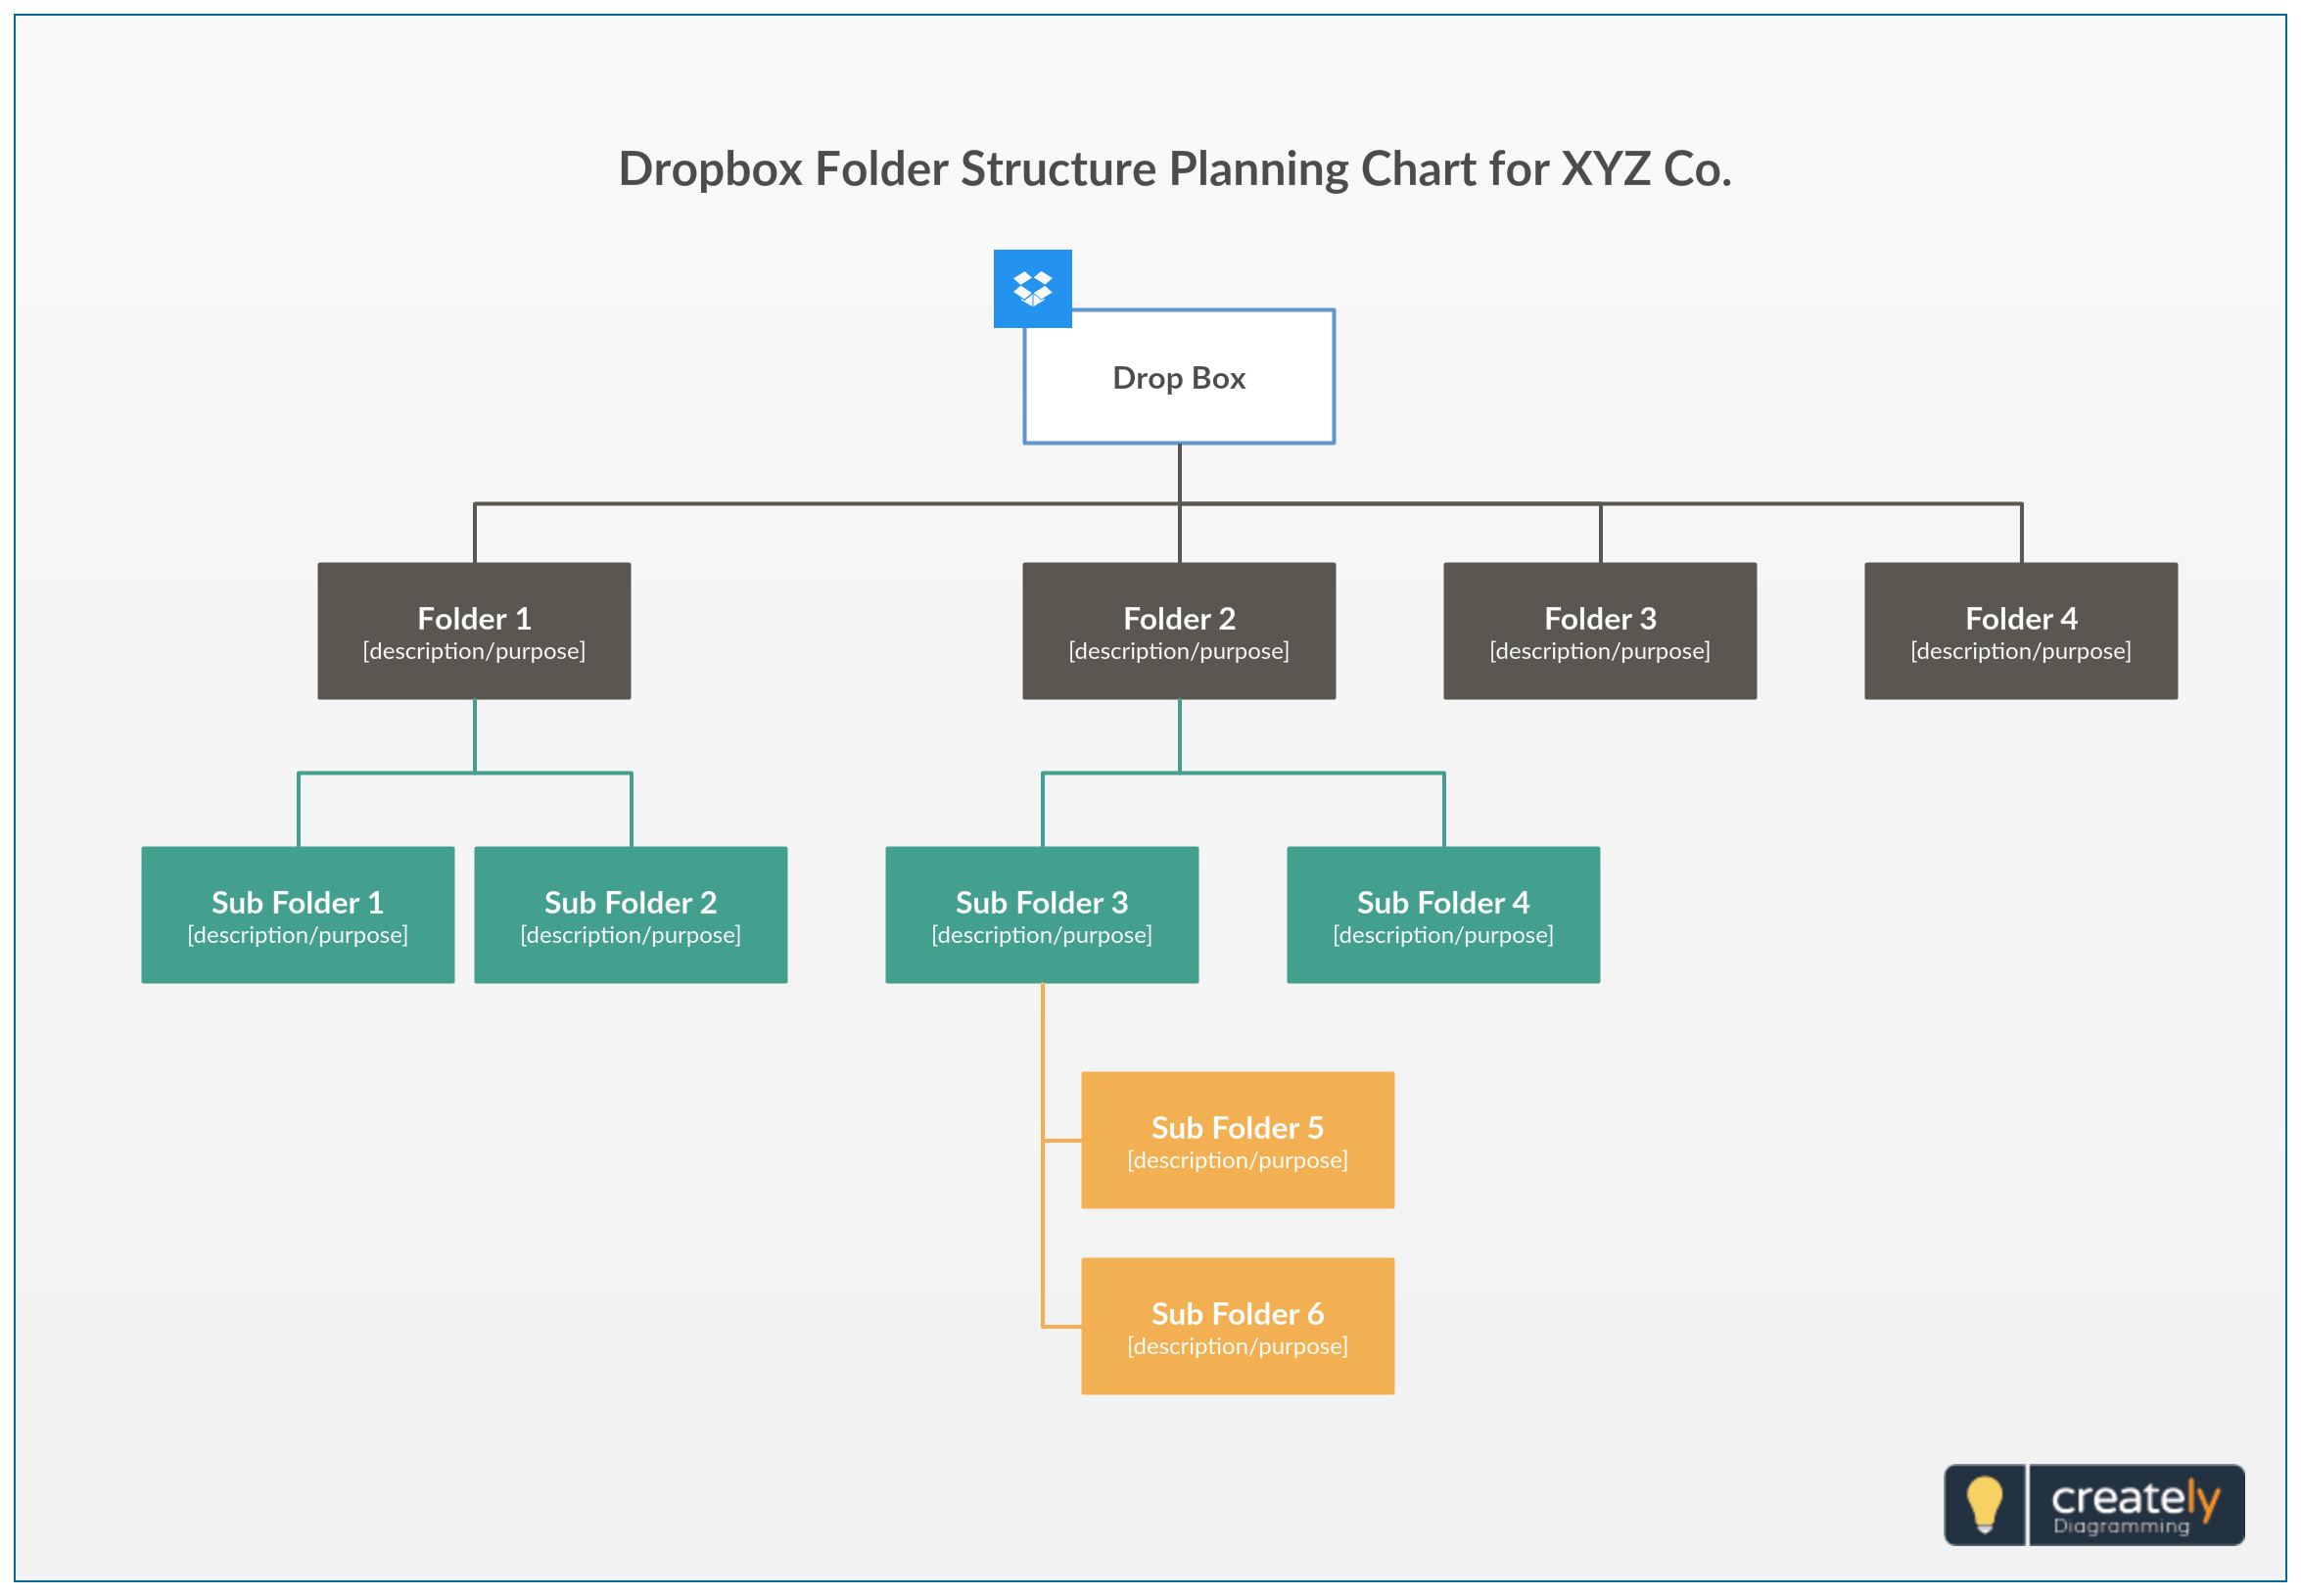 Dropbox Folder Structure Template Is The Way Drive Is Organized And How Files And Folders Are Displayed To The User Fil Org Chart Organizational Chart Dropbox